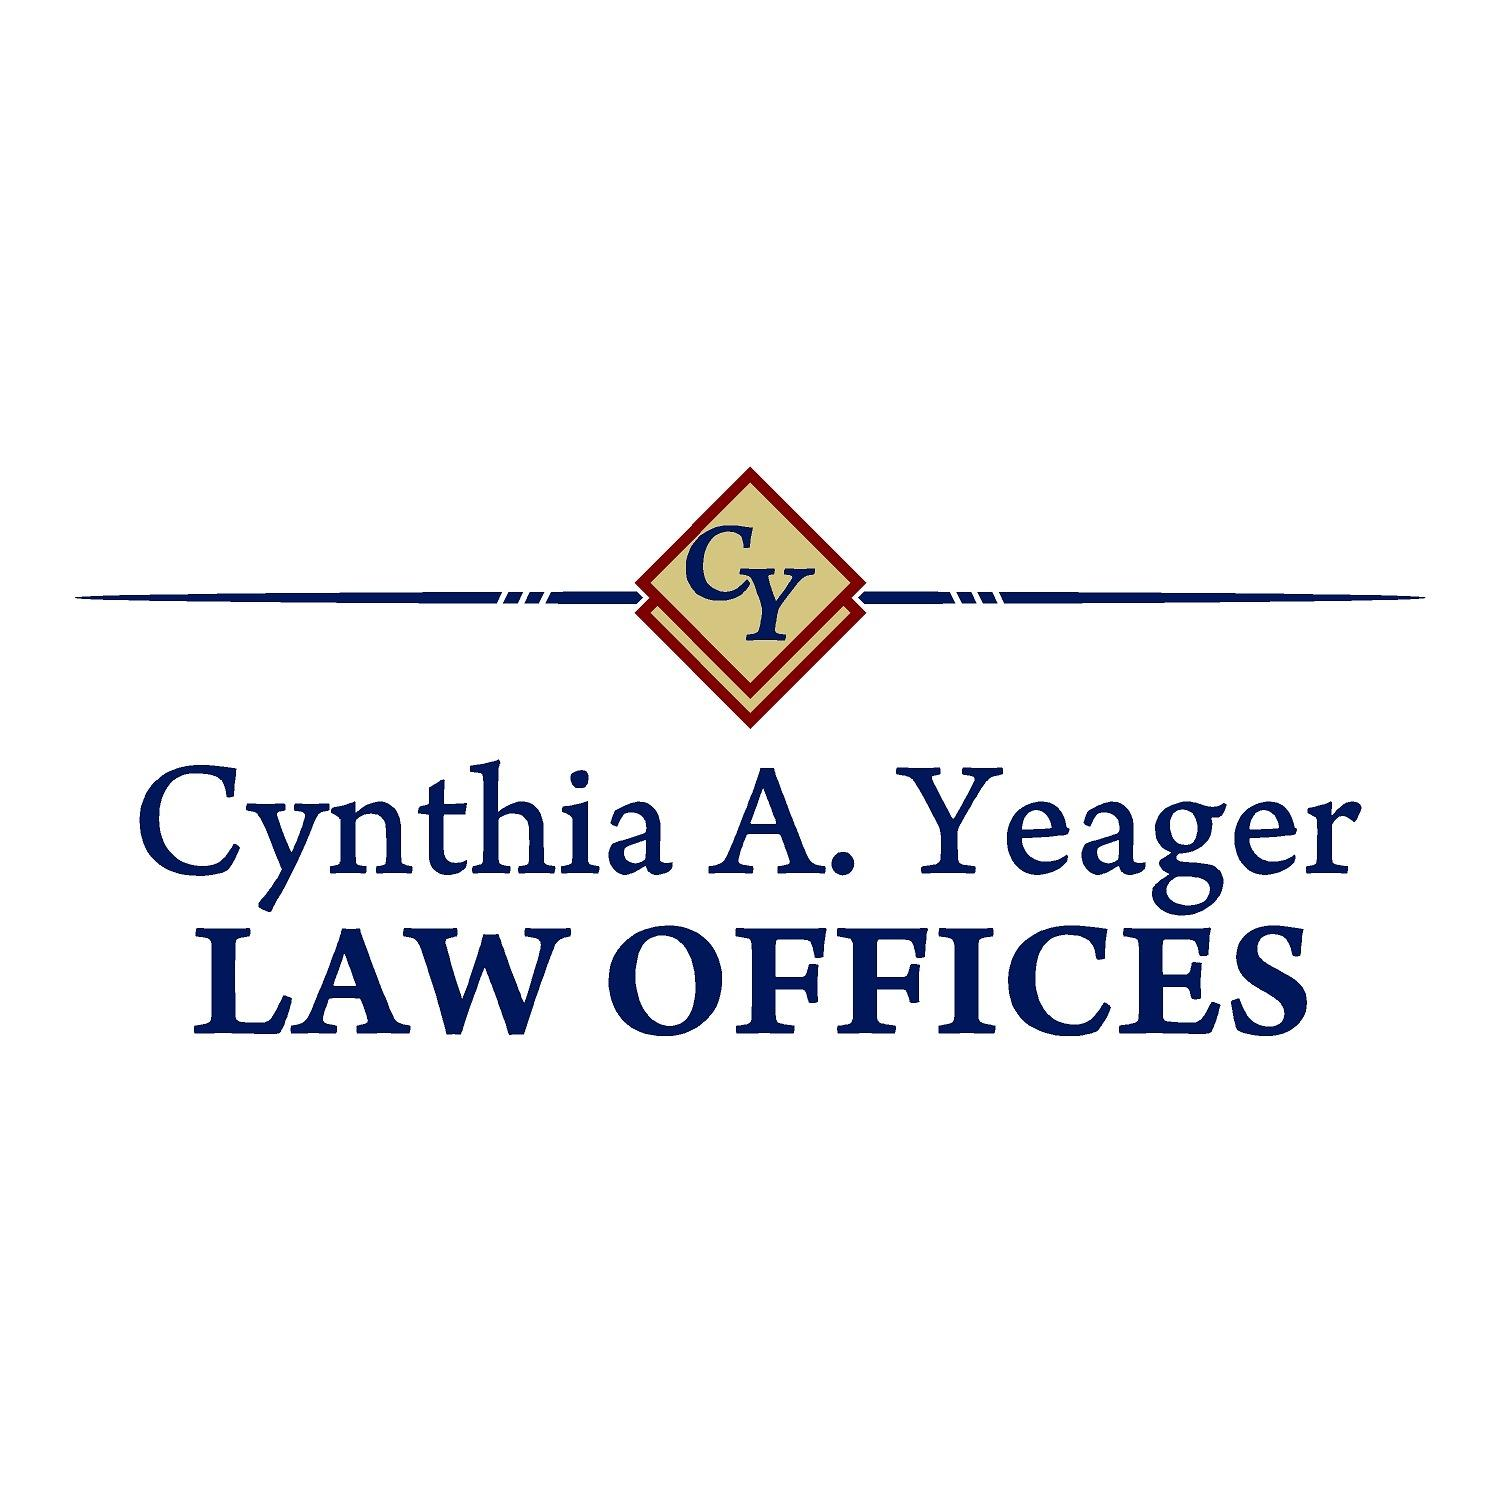 Cynthia A. Yeager Law Offices